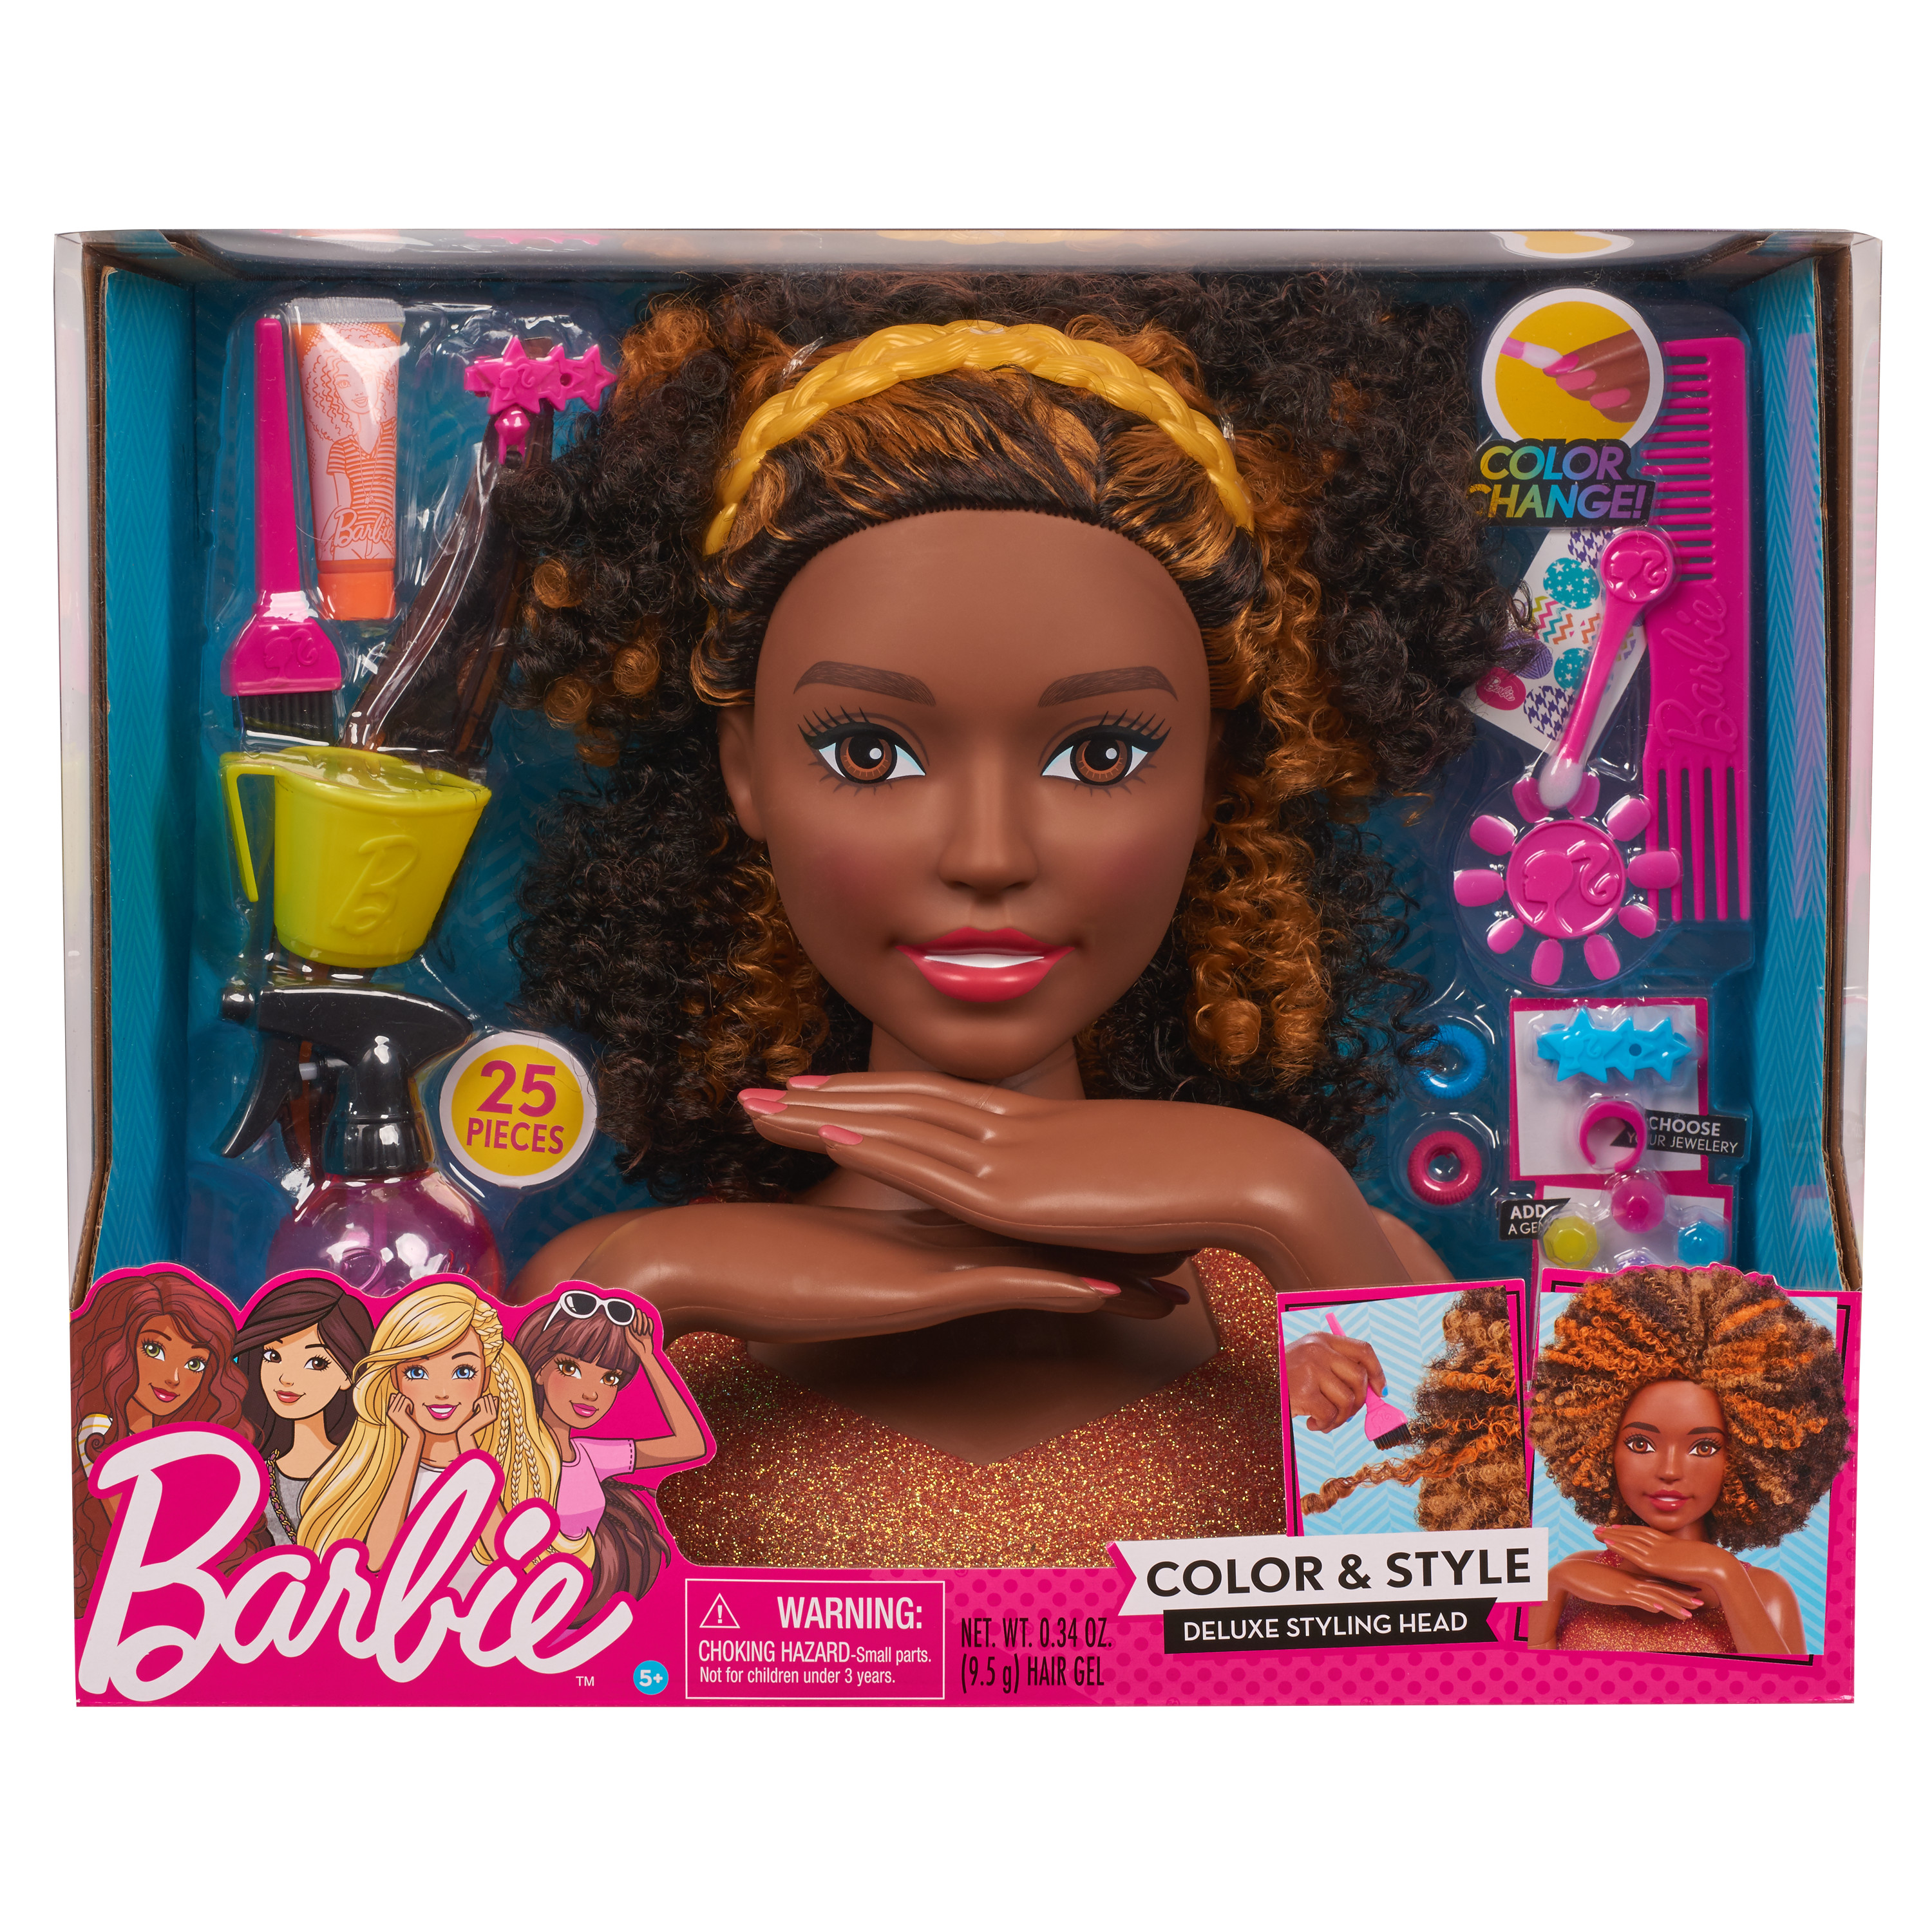 Barbie Color Style Deluxe Styling Head Curly Hair